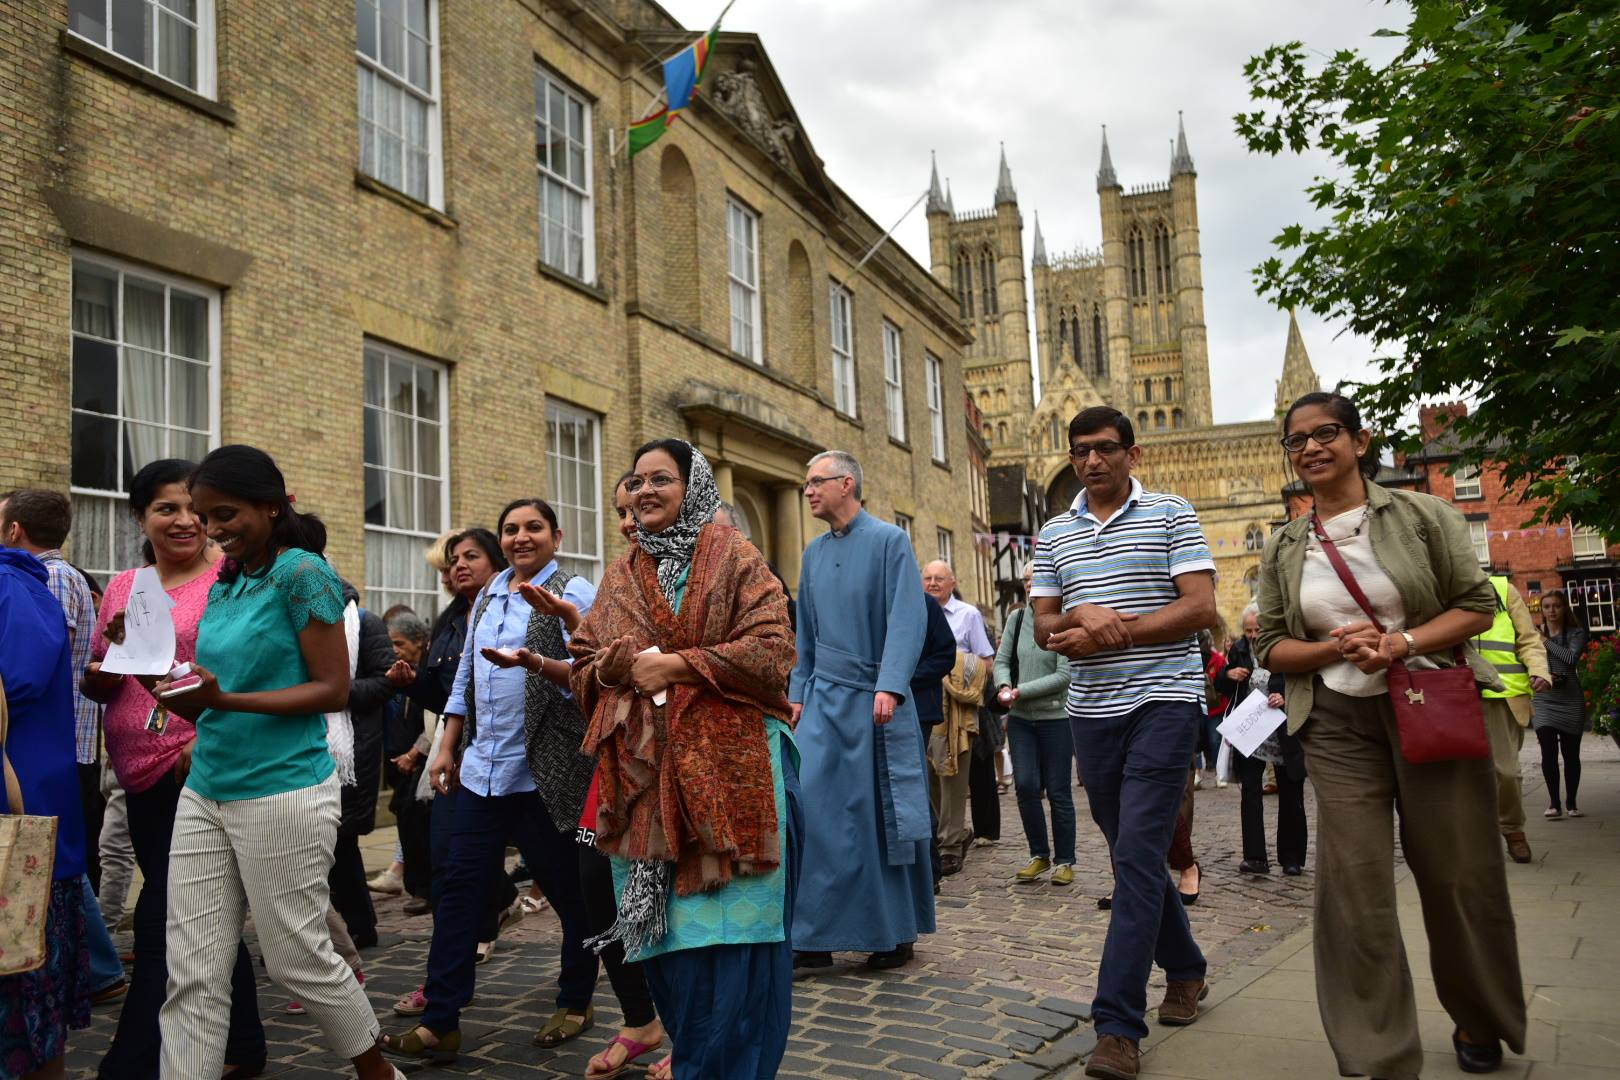 Lincoln residents took part in a peace walk on July 25 to promote togetherness and tolerance. Photo: Steve Smailes for The Lincolnite